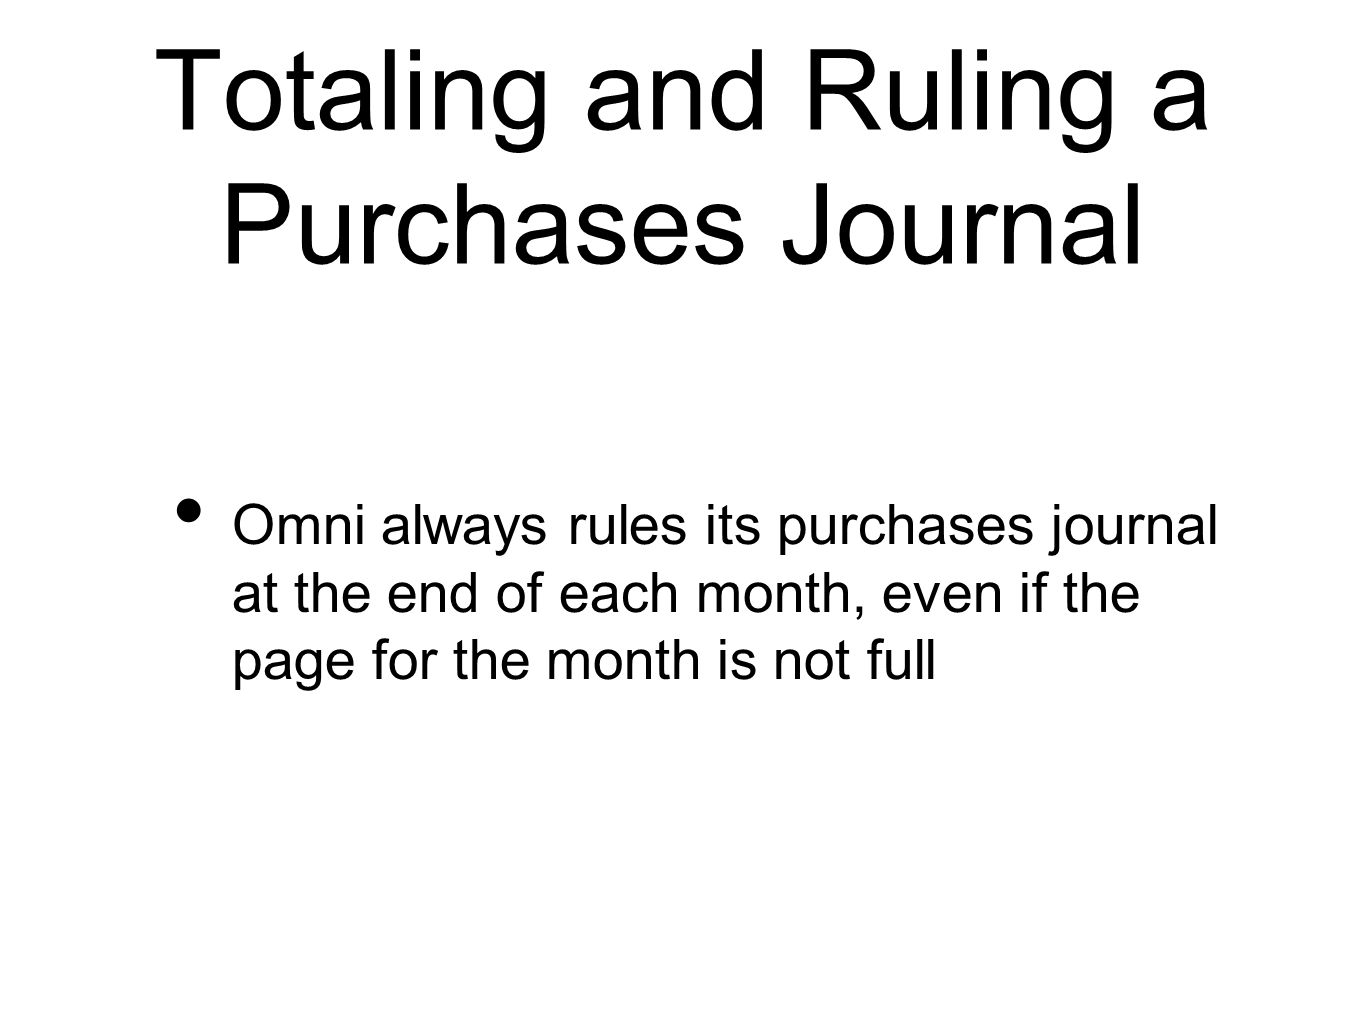 Totaling and Ruling a Purchases Journal Omni always rules its purchases journal at the end of each month, even if the page for the month is not full